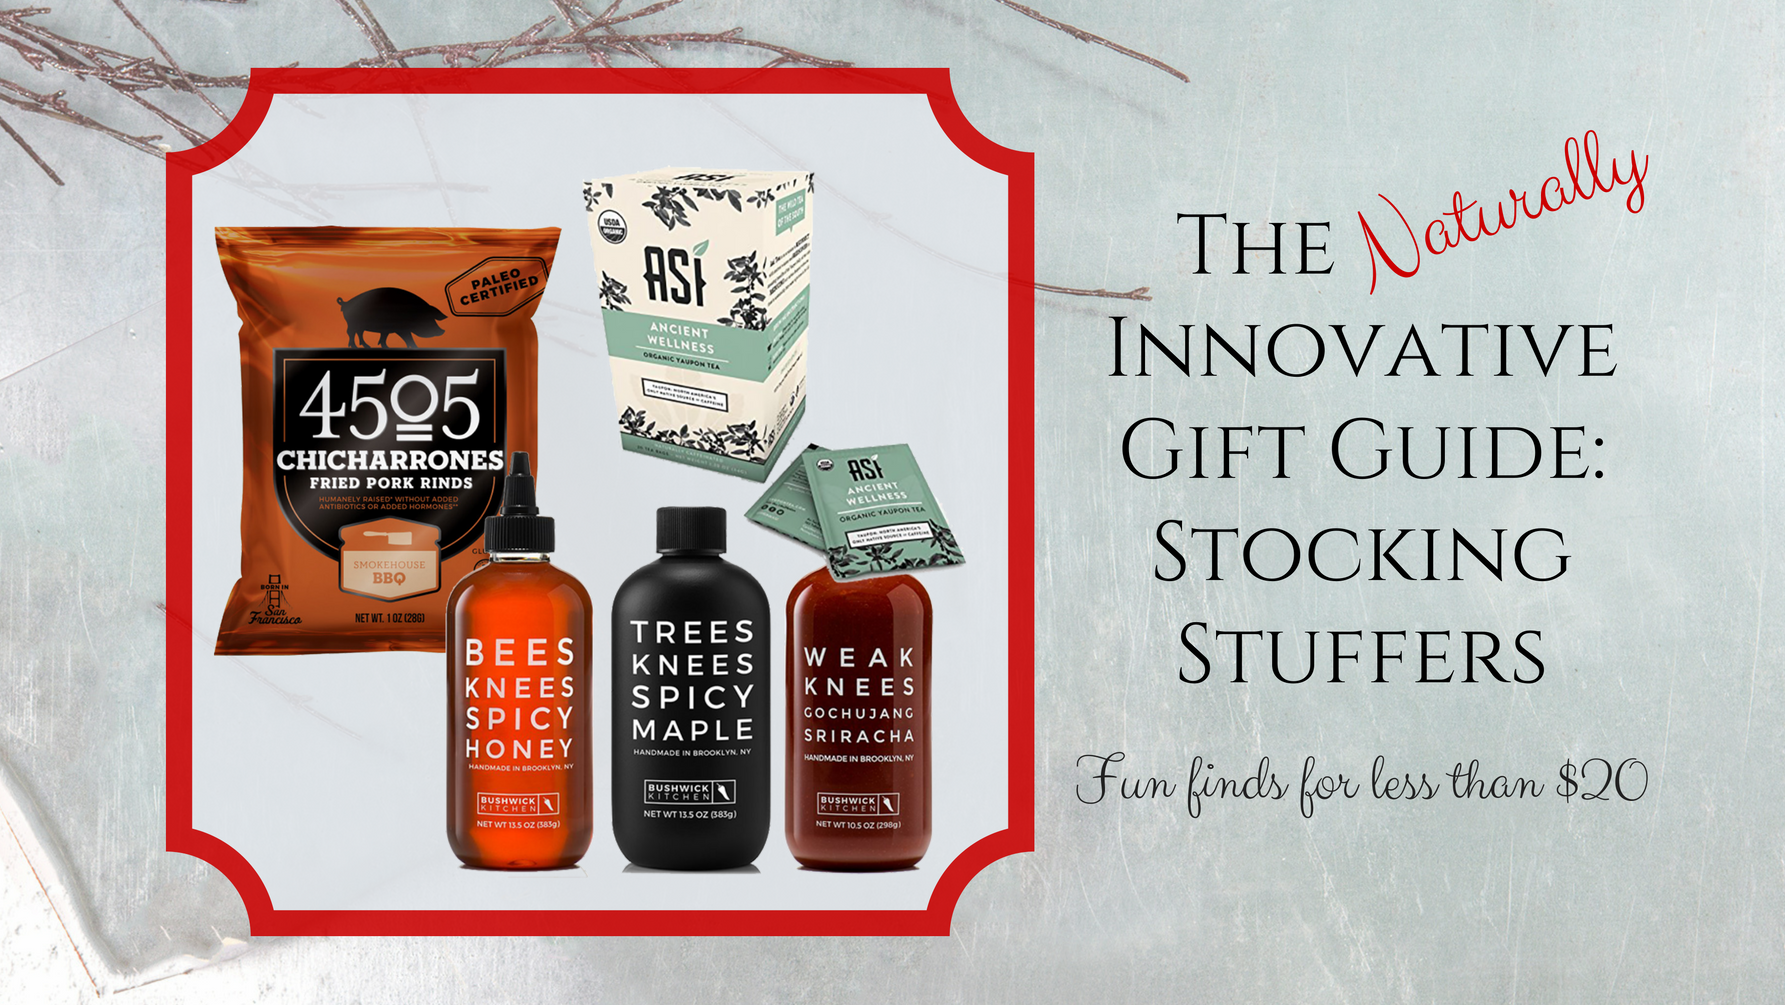 The Naturally Innovative Gift Guide: Stocking Stuffers